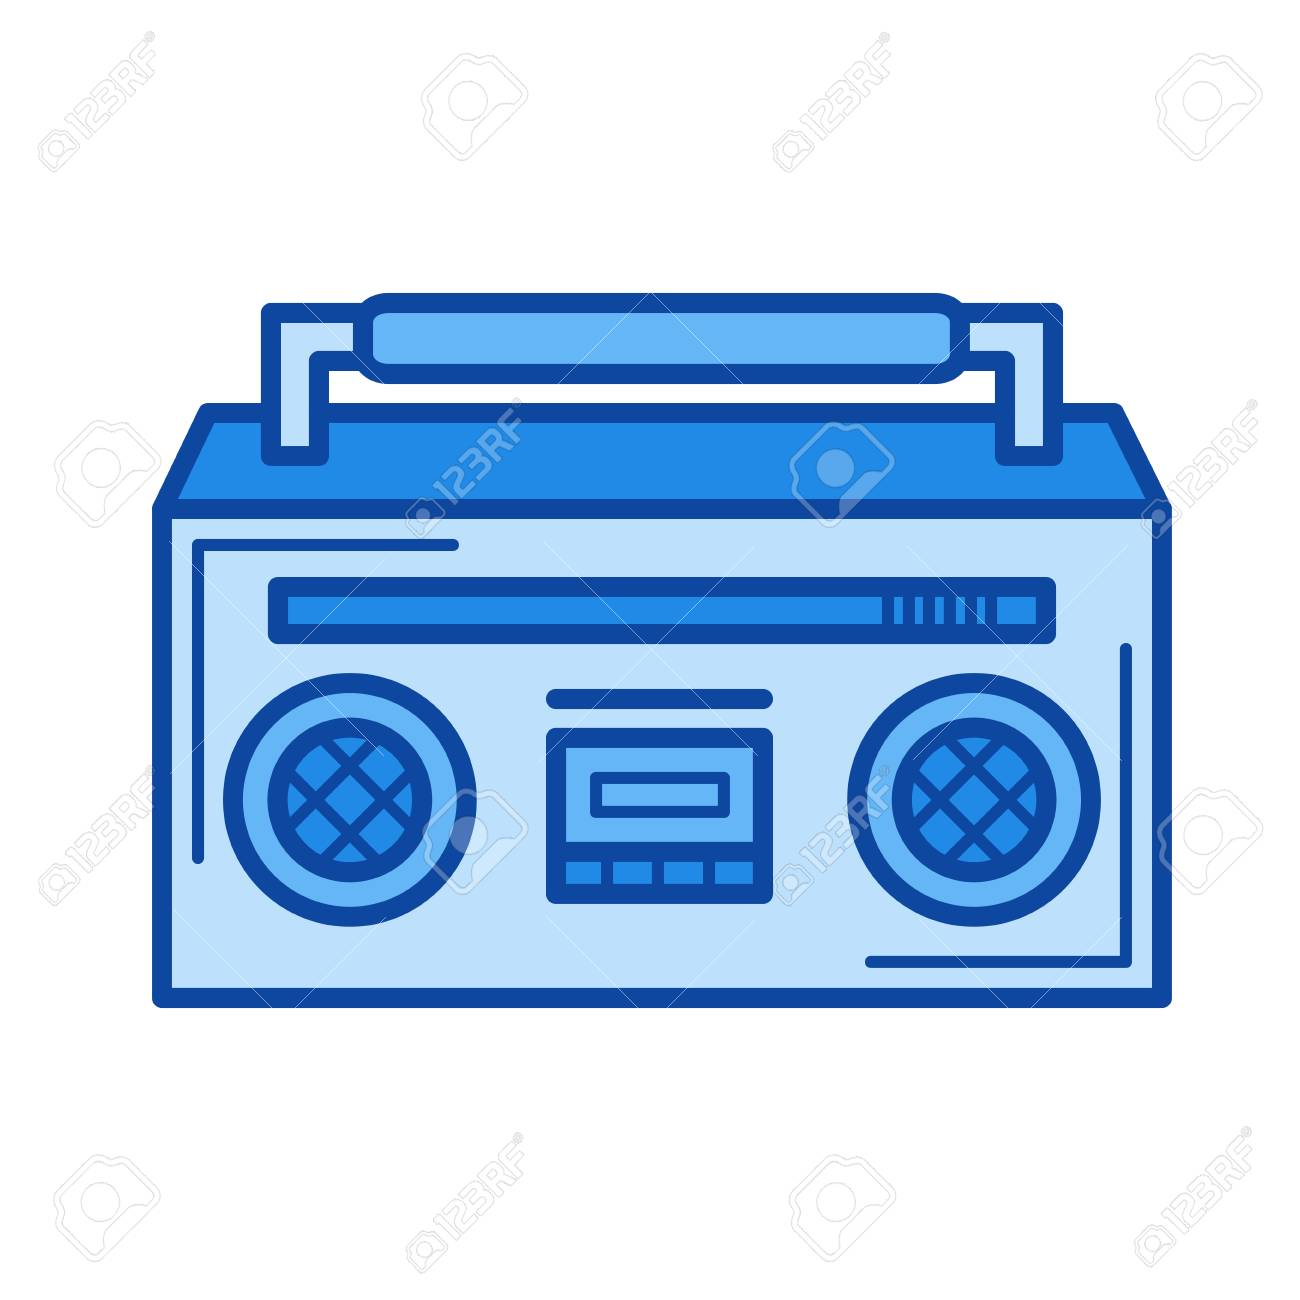 boombox vector line icon isolated on white background boombox rh 123rf com boombox vector png 80s boombox vector